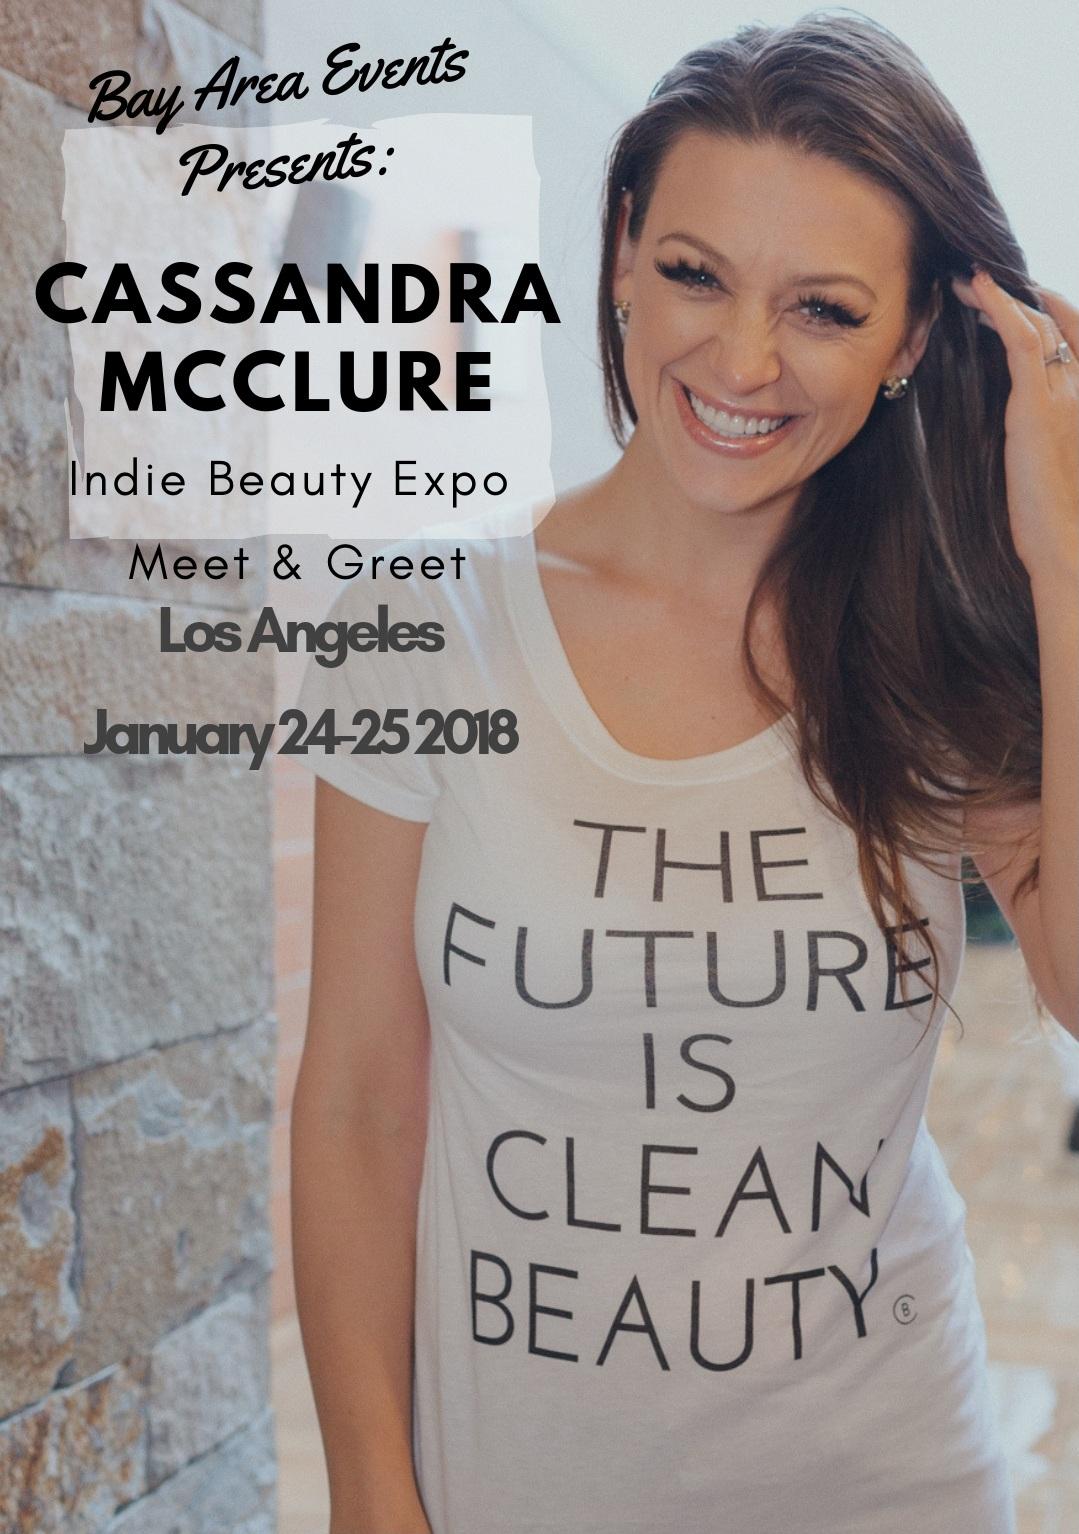 Indie Beauty Expo's clean beauty makeup artist - Los Angeles meet & greet January 24, 25